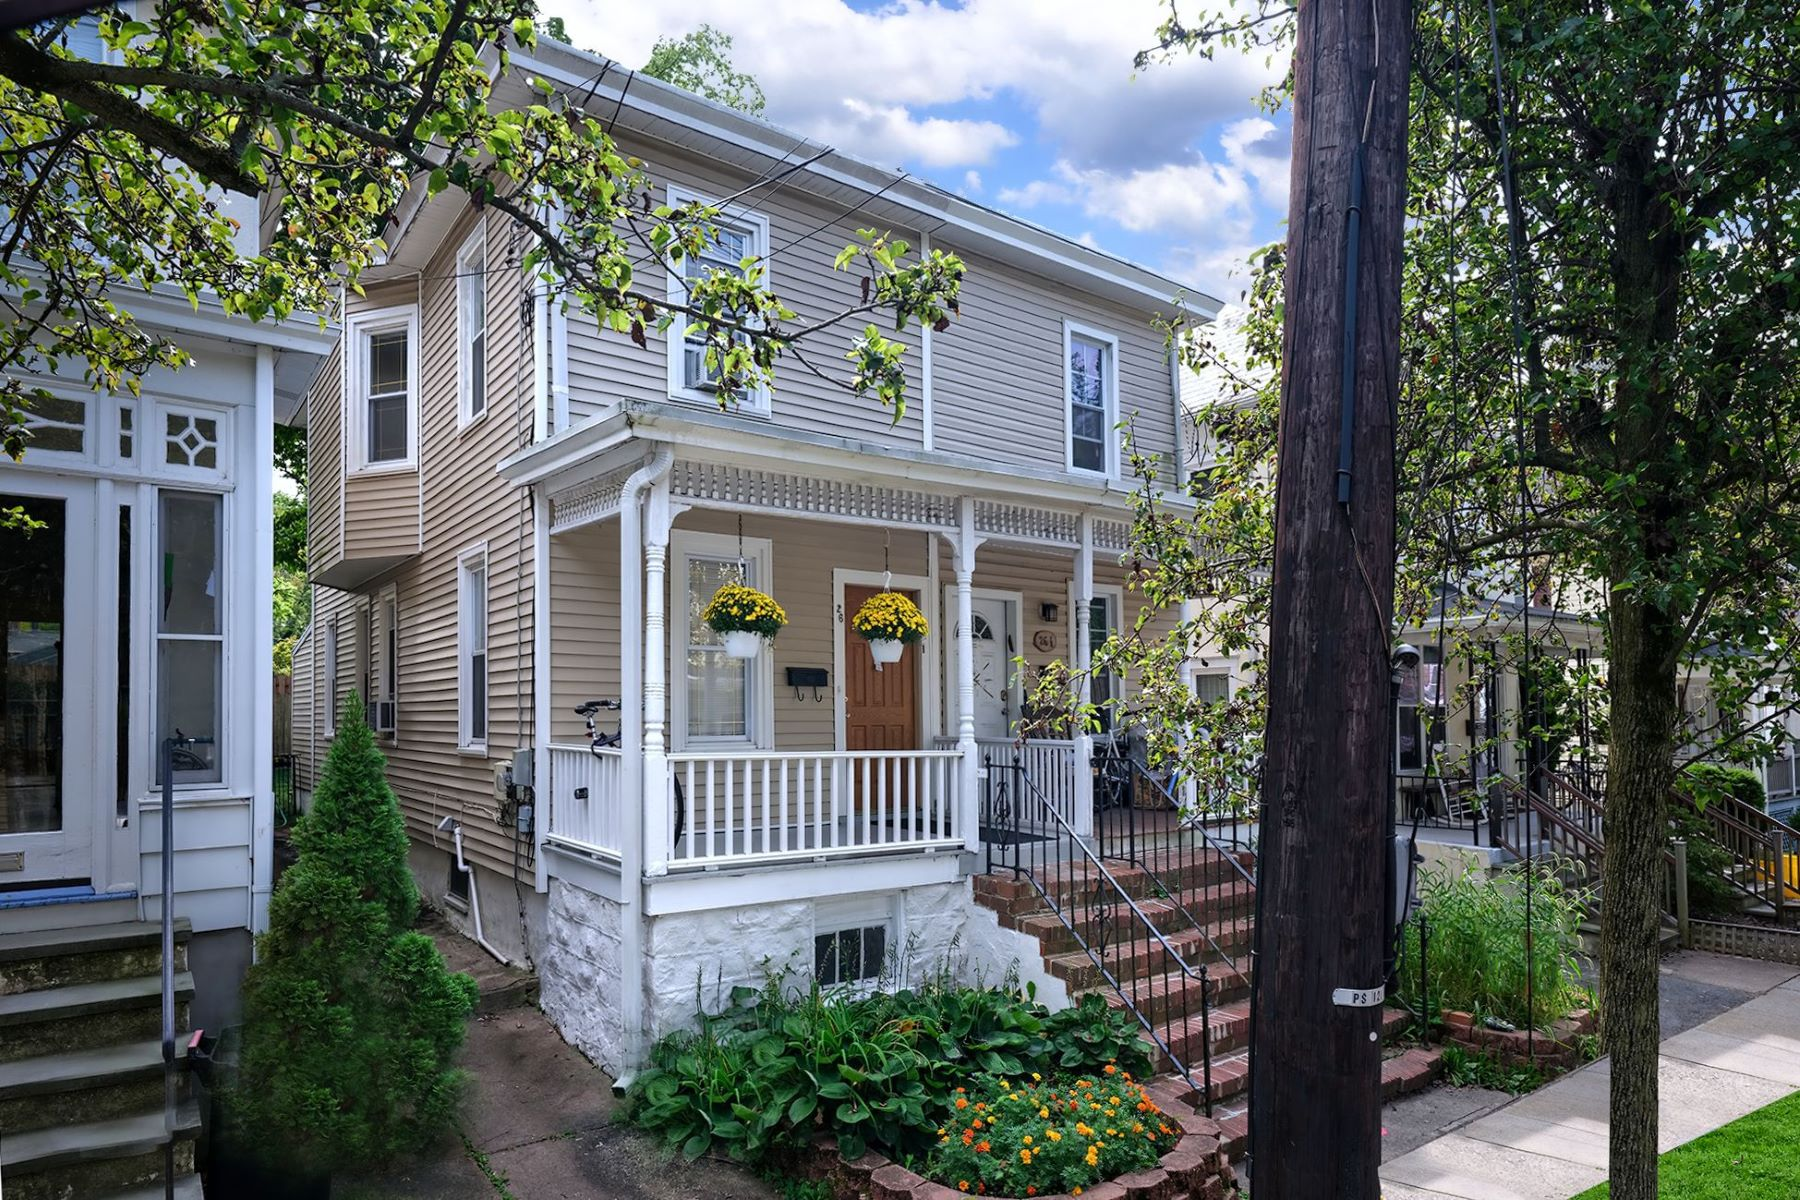 Duplex Homes for Sale at Settle in to this Steps-From-Everything Twin 26 Leigh Avenue, Princeton, New Jersey 08542 United States